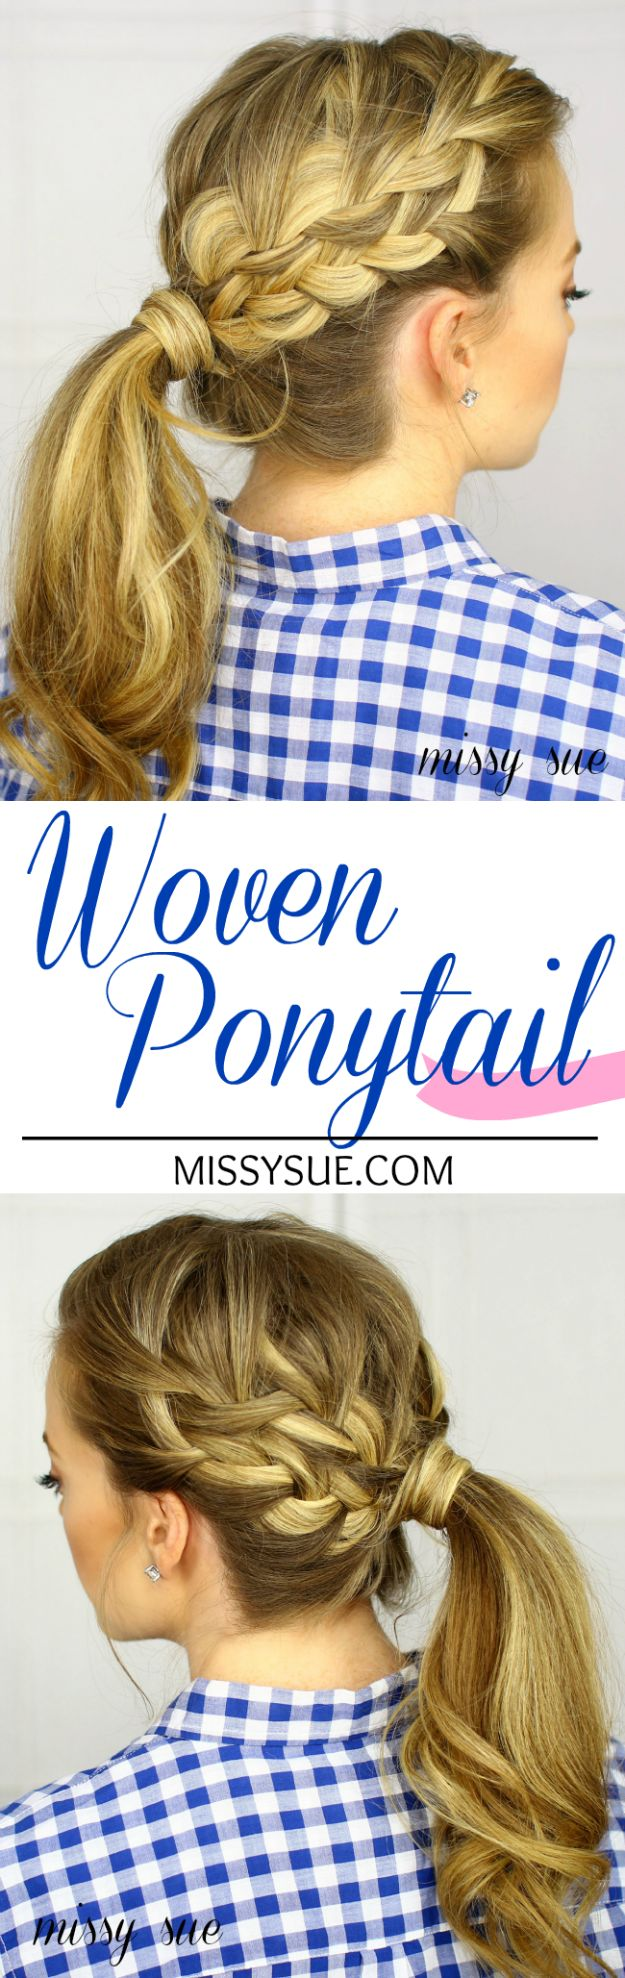 Cool Hair Tutorials for Summer - Woven Ponytail Tutorial - Easy Hairstyles and Creative Looks for Hair - Beachy Waves, Hair Styles for Short Hair, Medium Length and Long Hair - Ponytails, Updo Ideas and Quick Last Minute Hairstyle for Teens, Teenagers and Women http://diyprojectsforteens.com/cool-hairstyles-summer